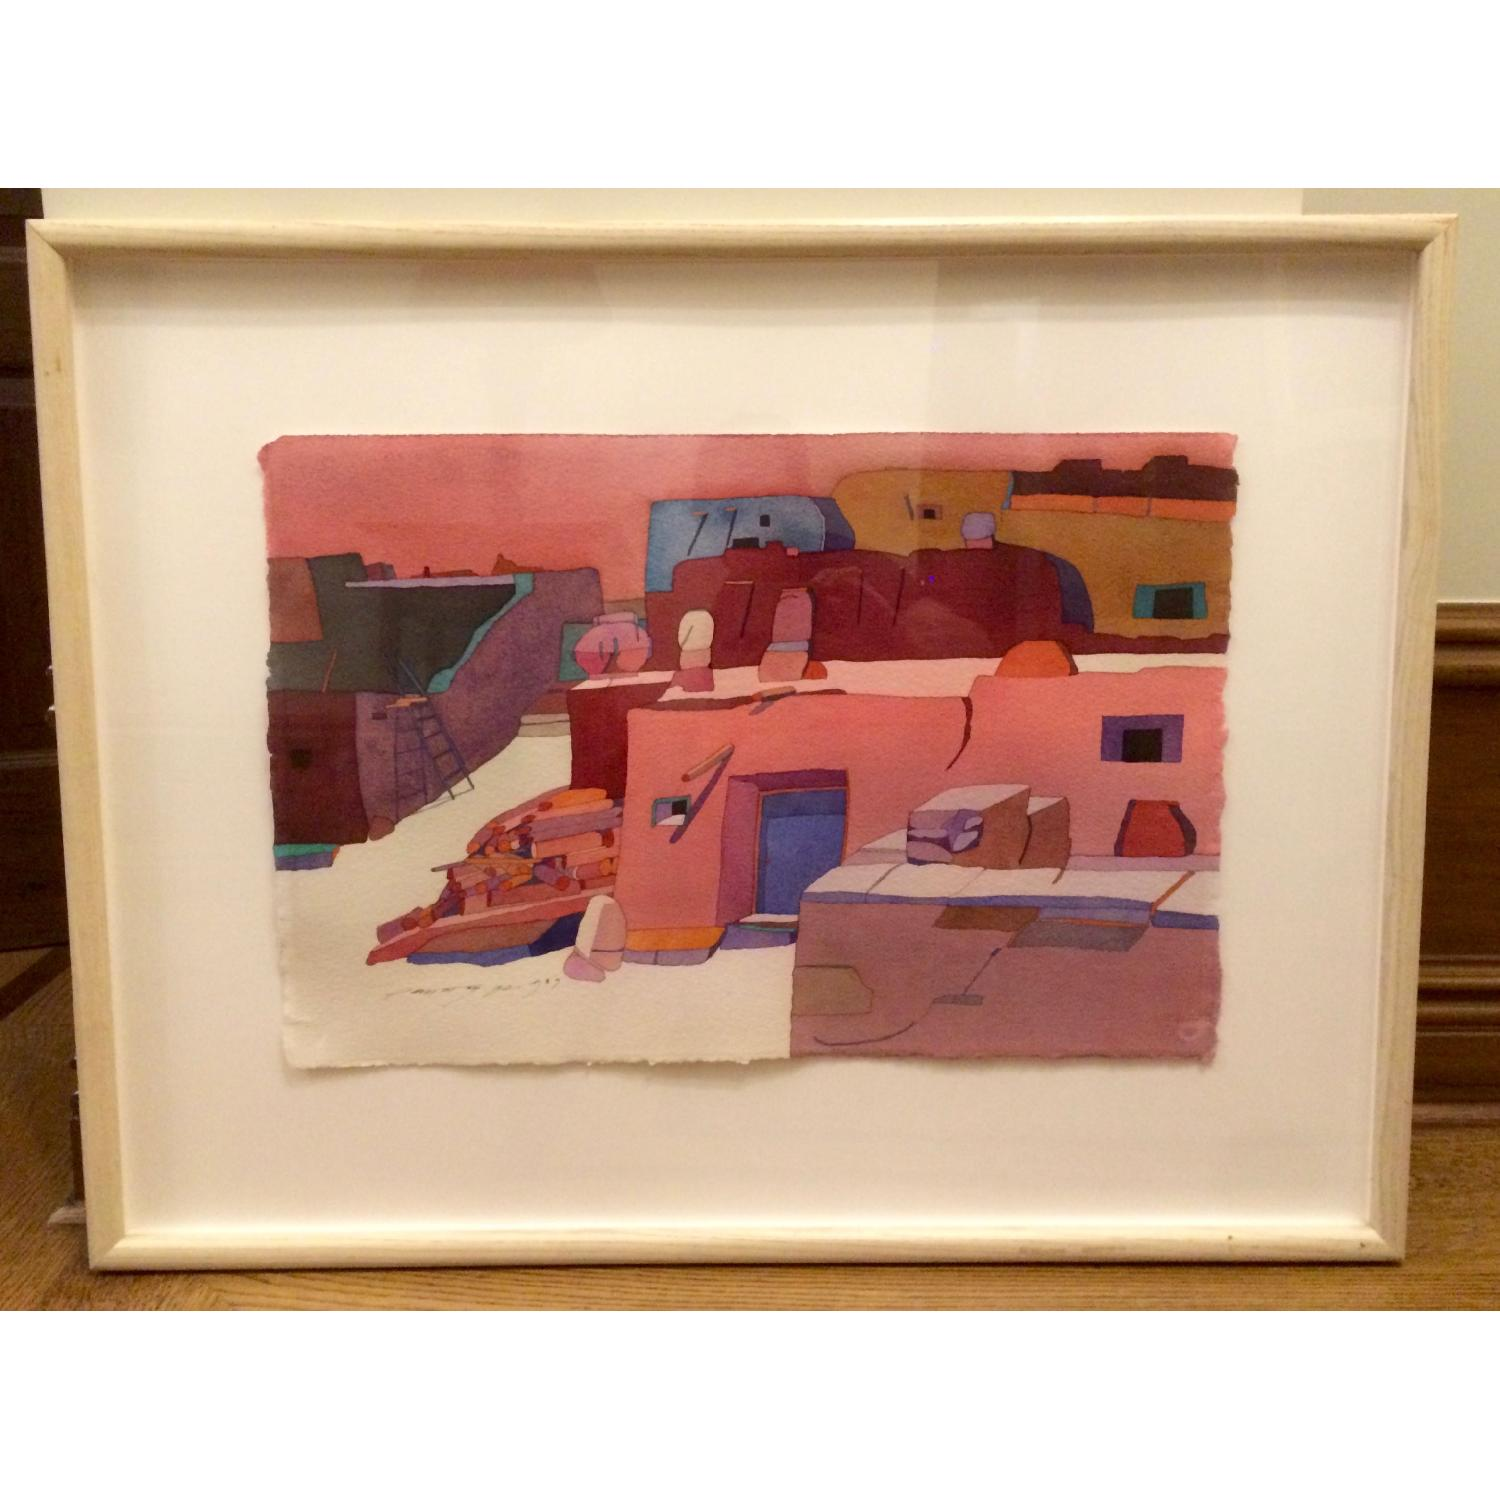 Framed Sari Staggs Watercolor Painting - Village Kiva with Fireplace - image-1